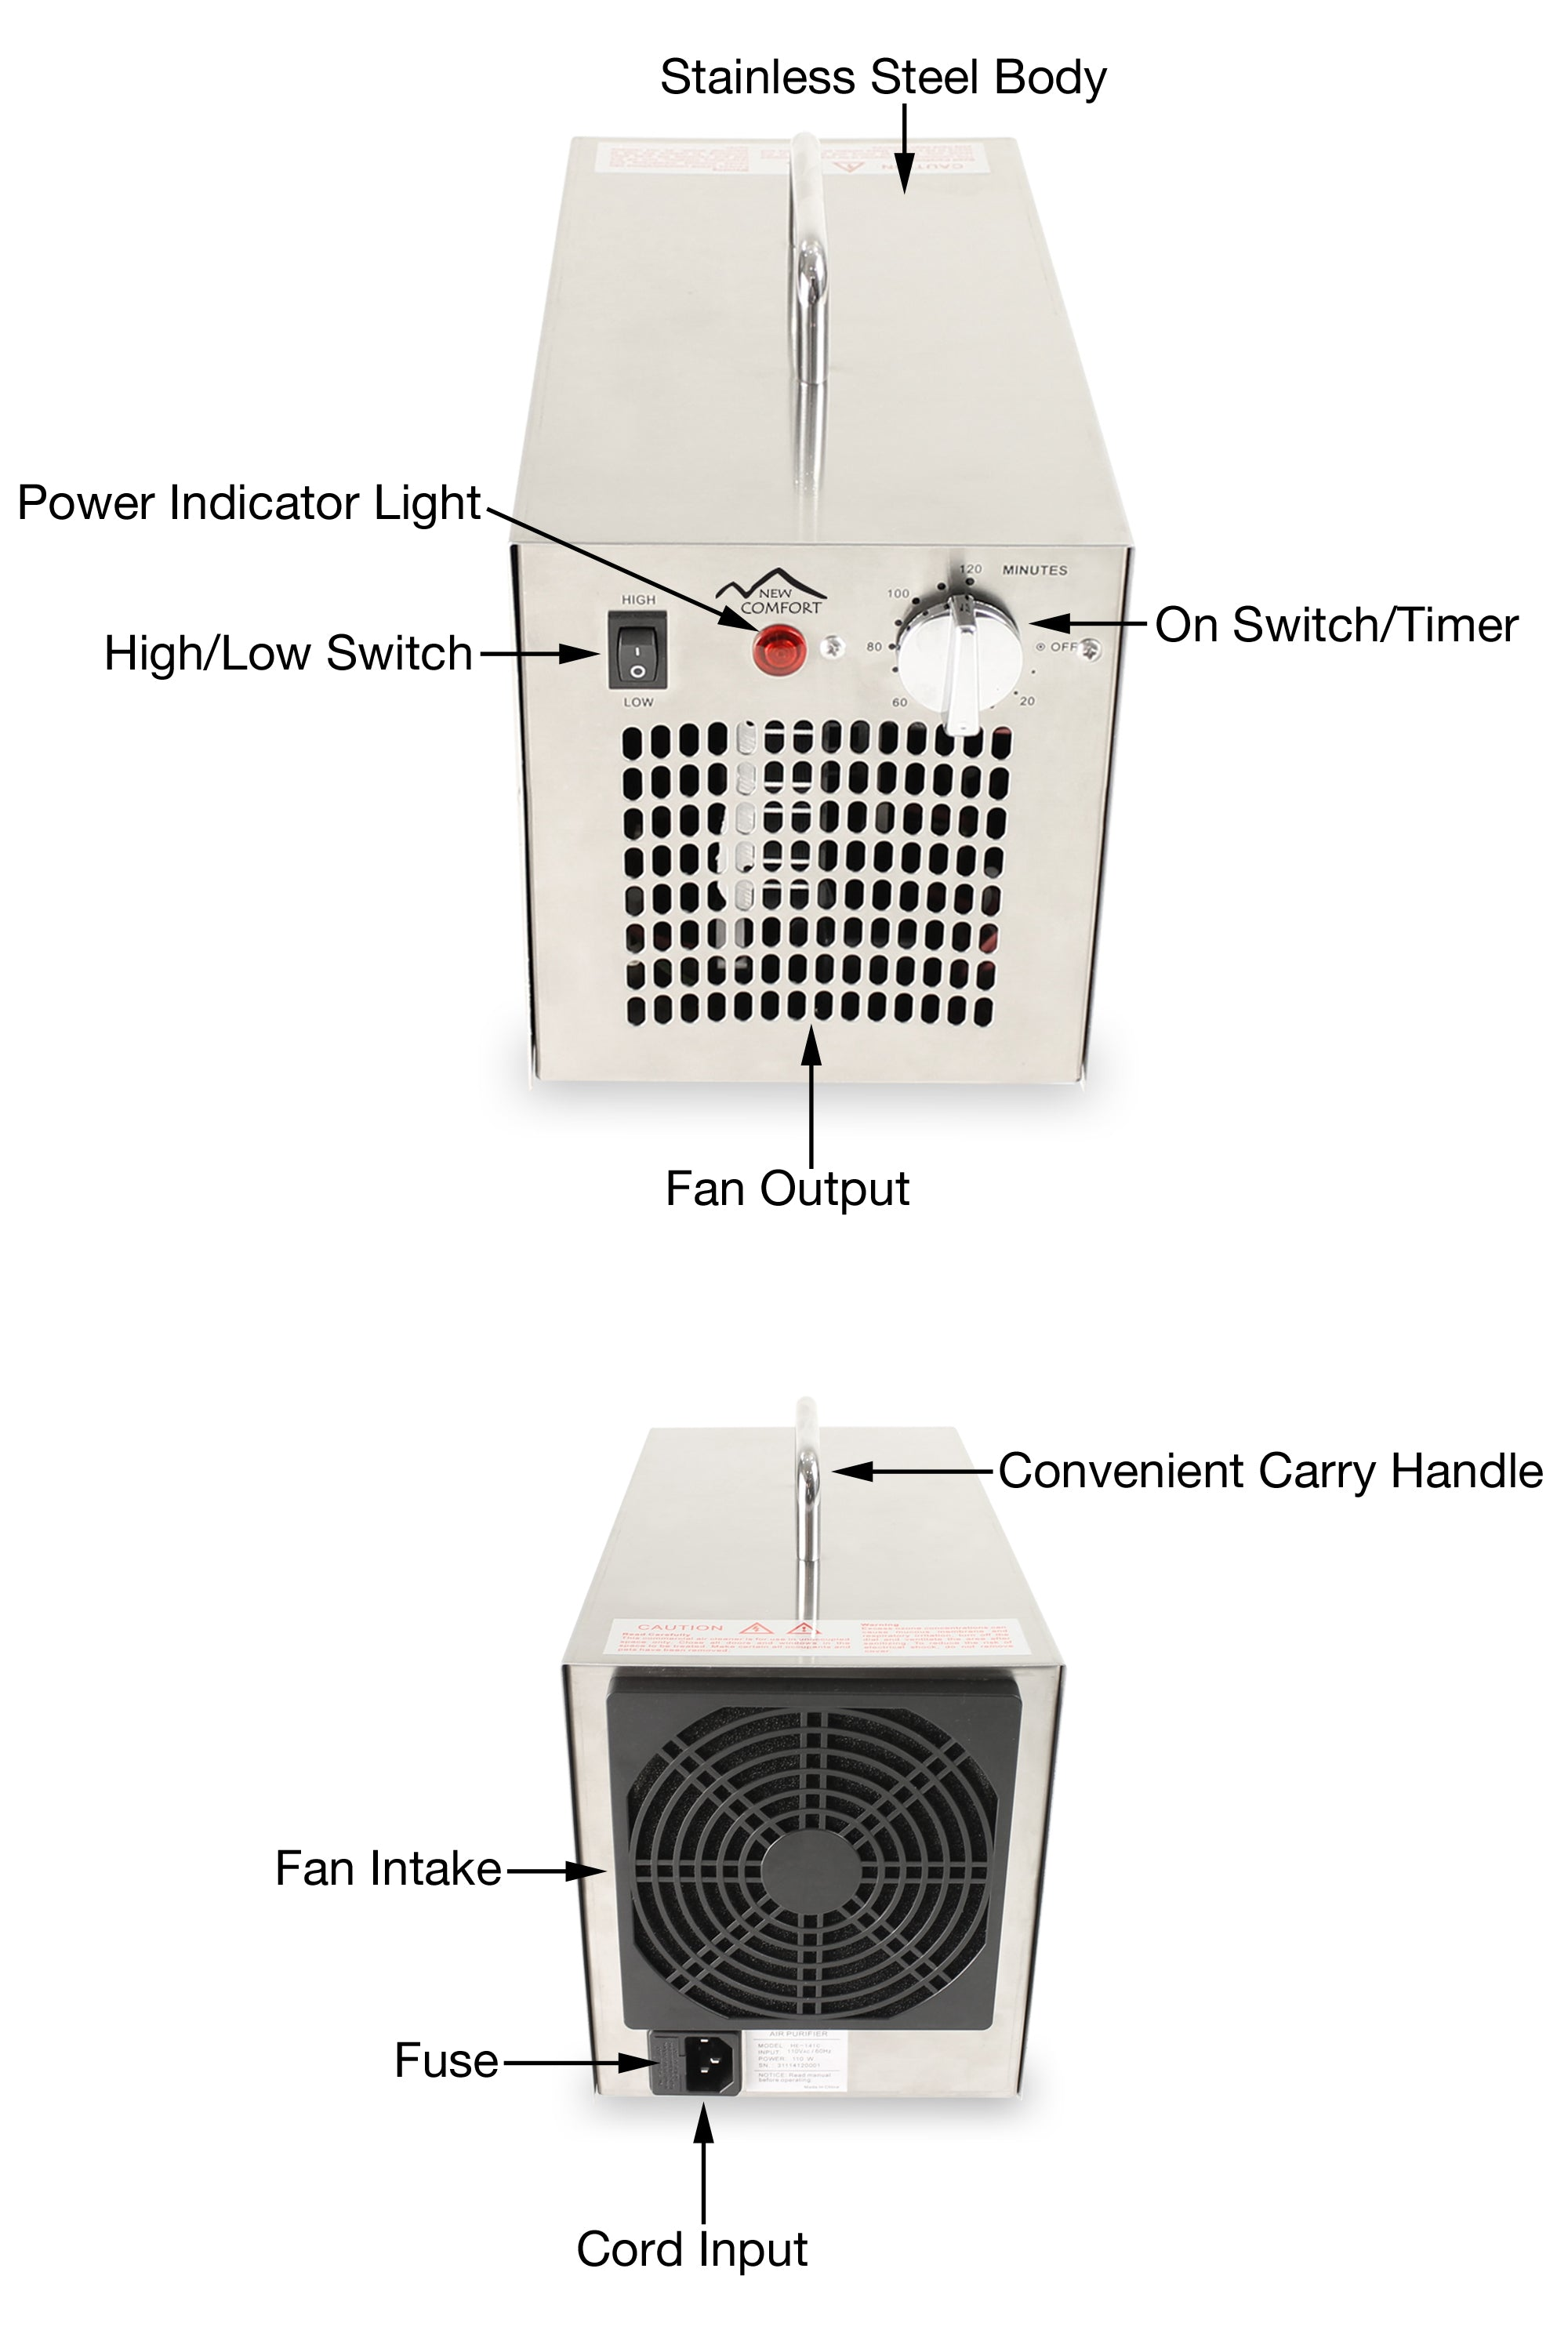 Stainless Steel Commercial Ozone Generating Air Purifier by New Comfort